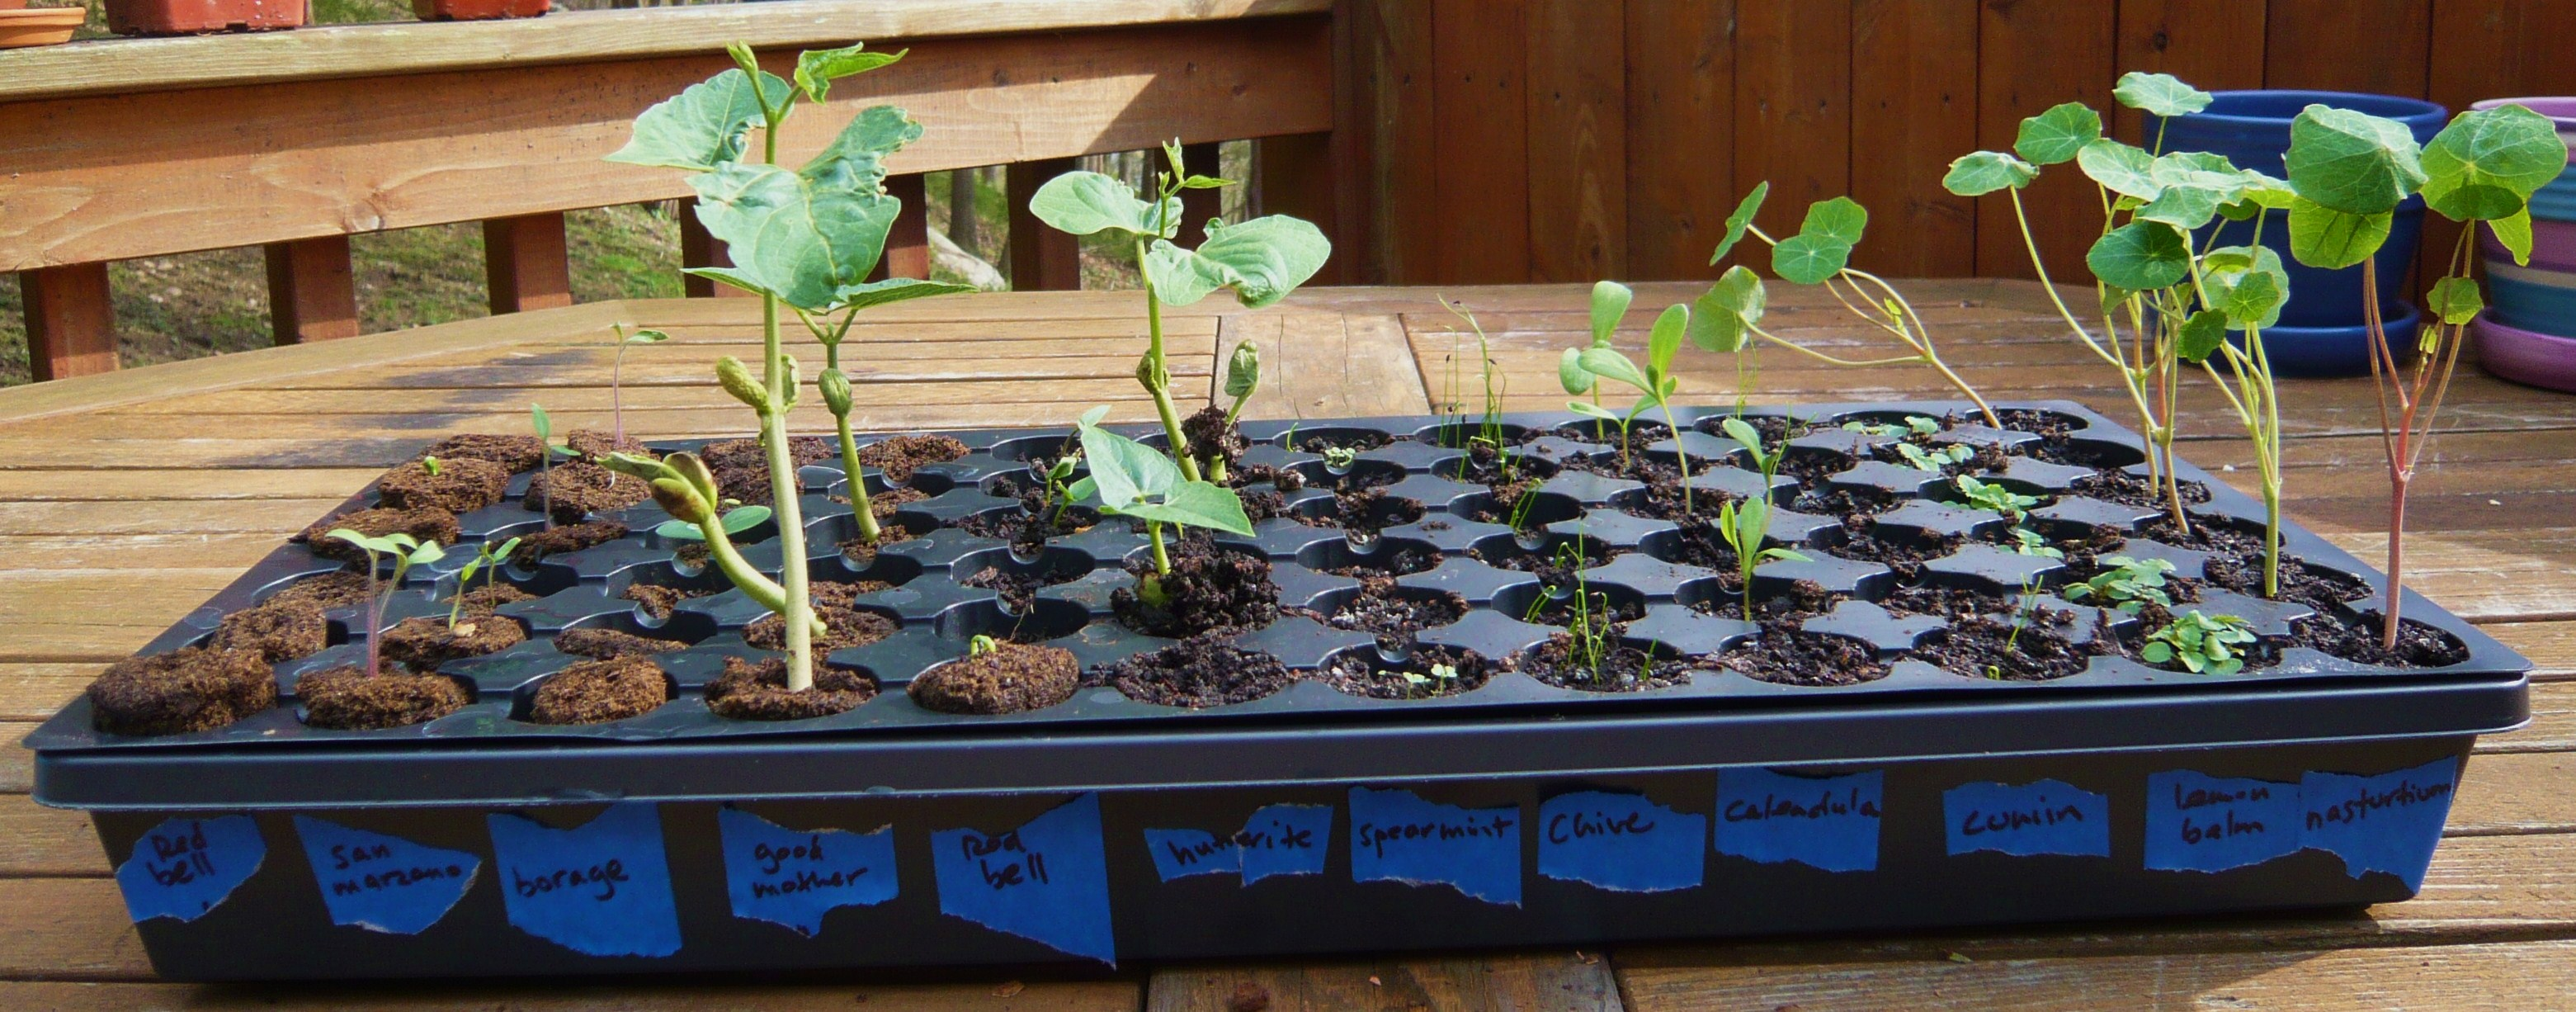 Seed tray started April 13; Earth Plugs on the left, container mix on the right.